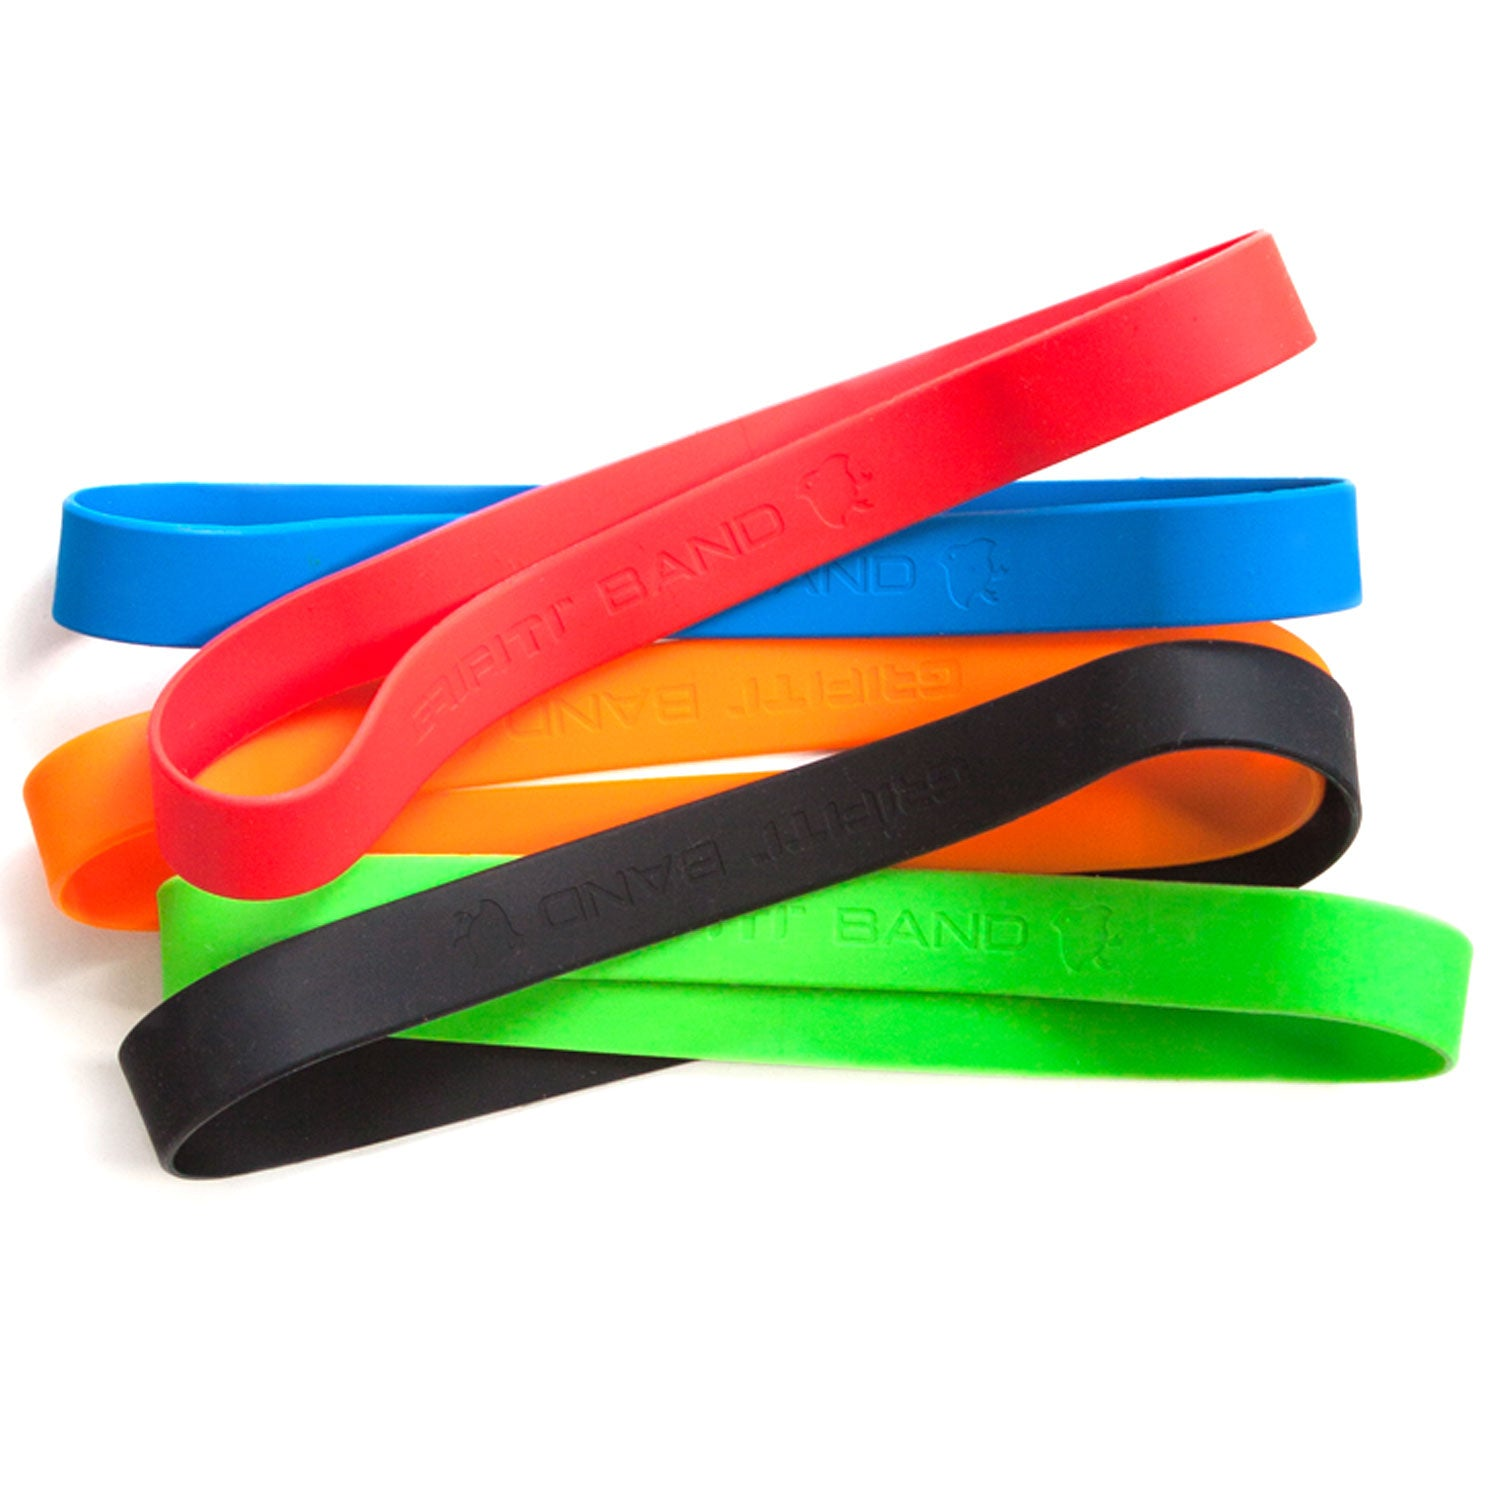 Grifiti Band Joes 9 x .75 Silicone Rubber Bands - Grifiti